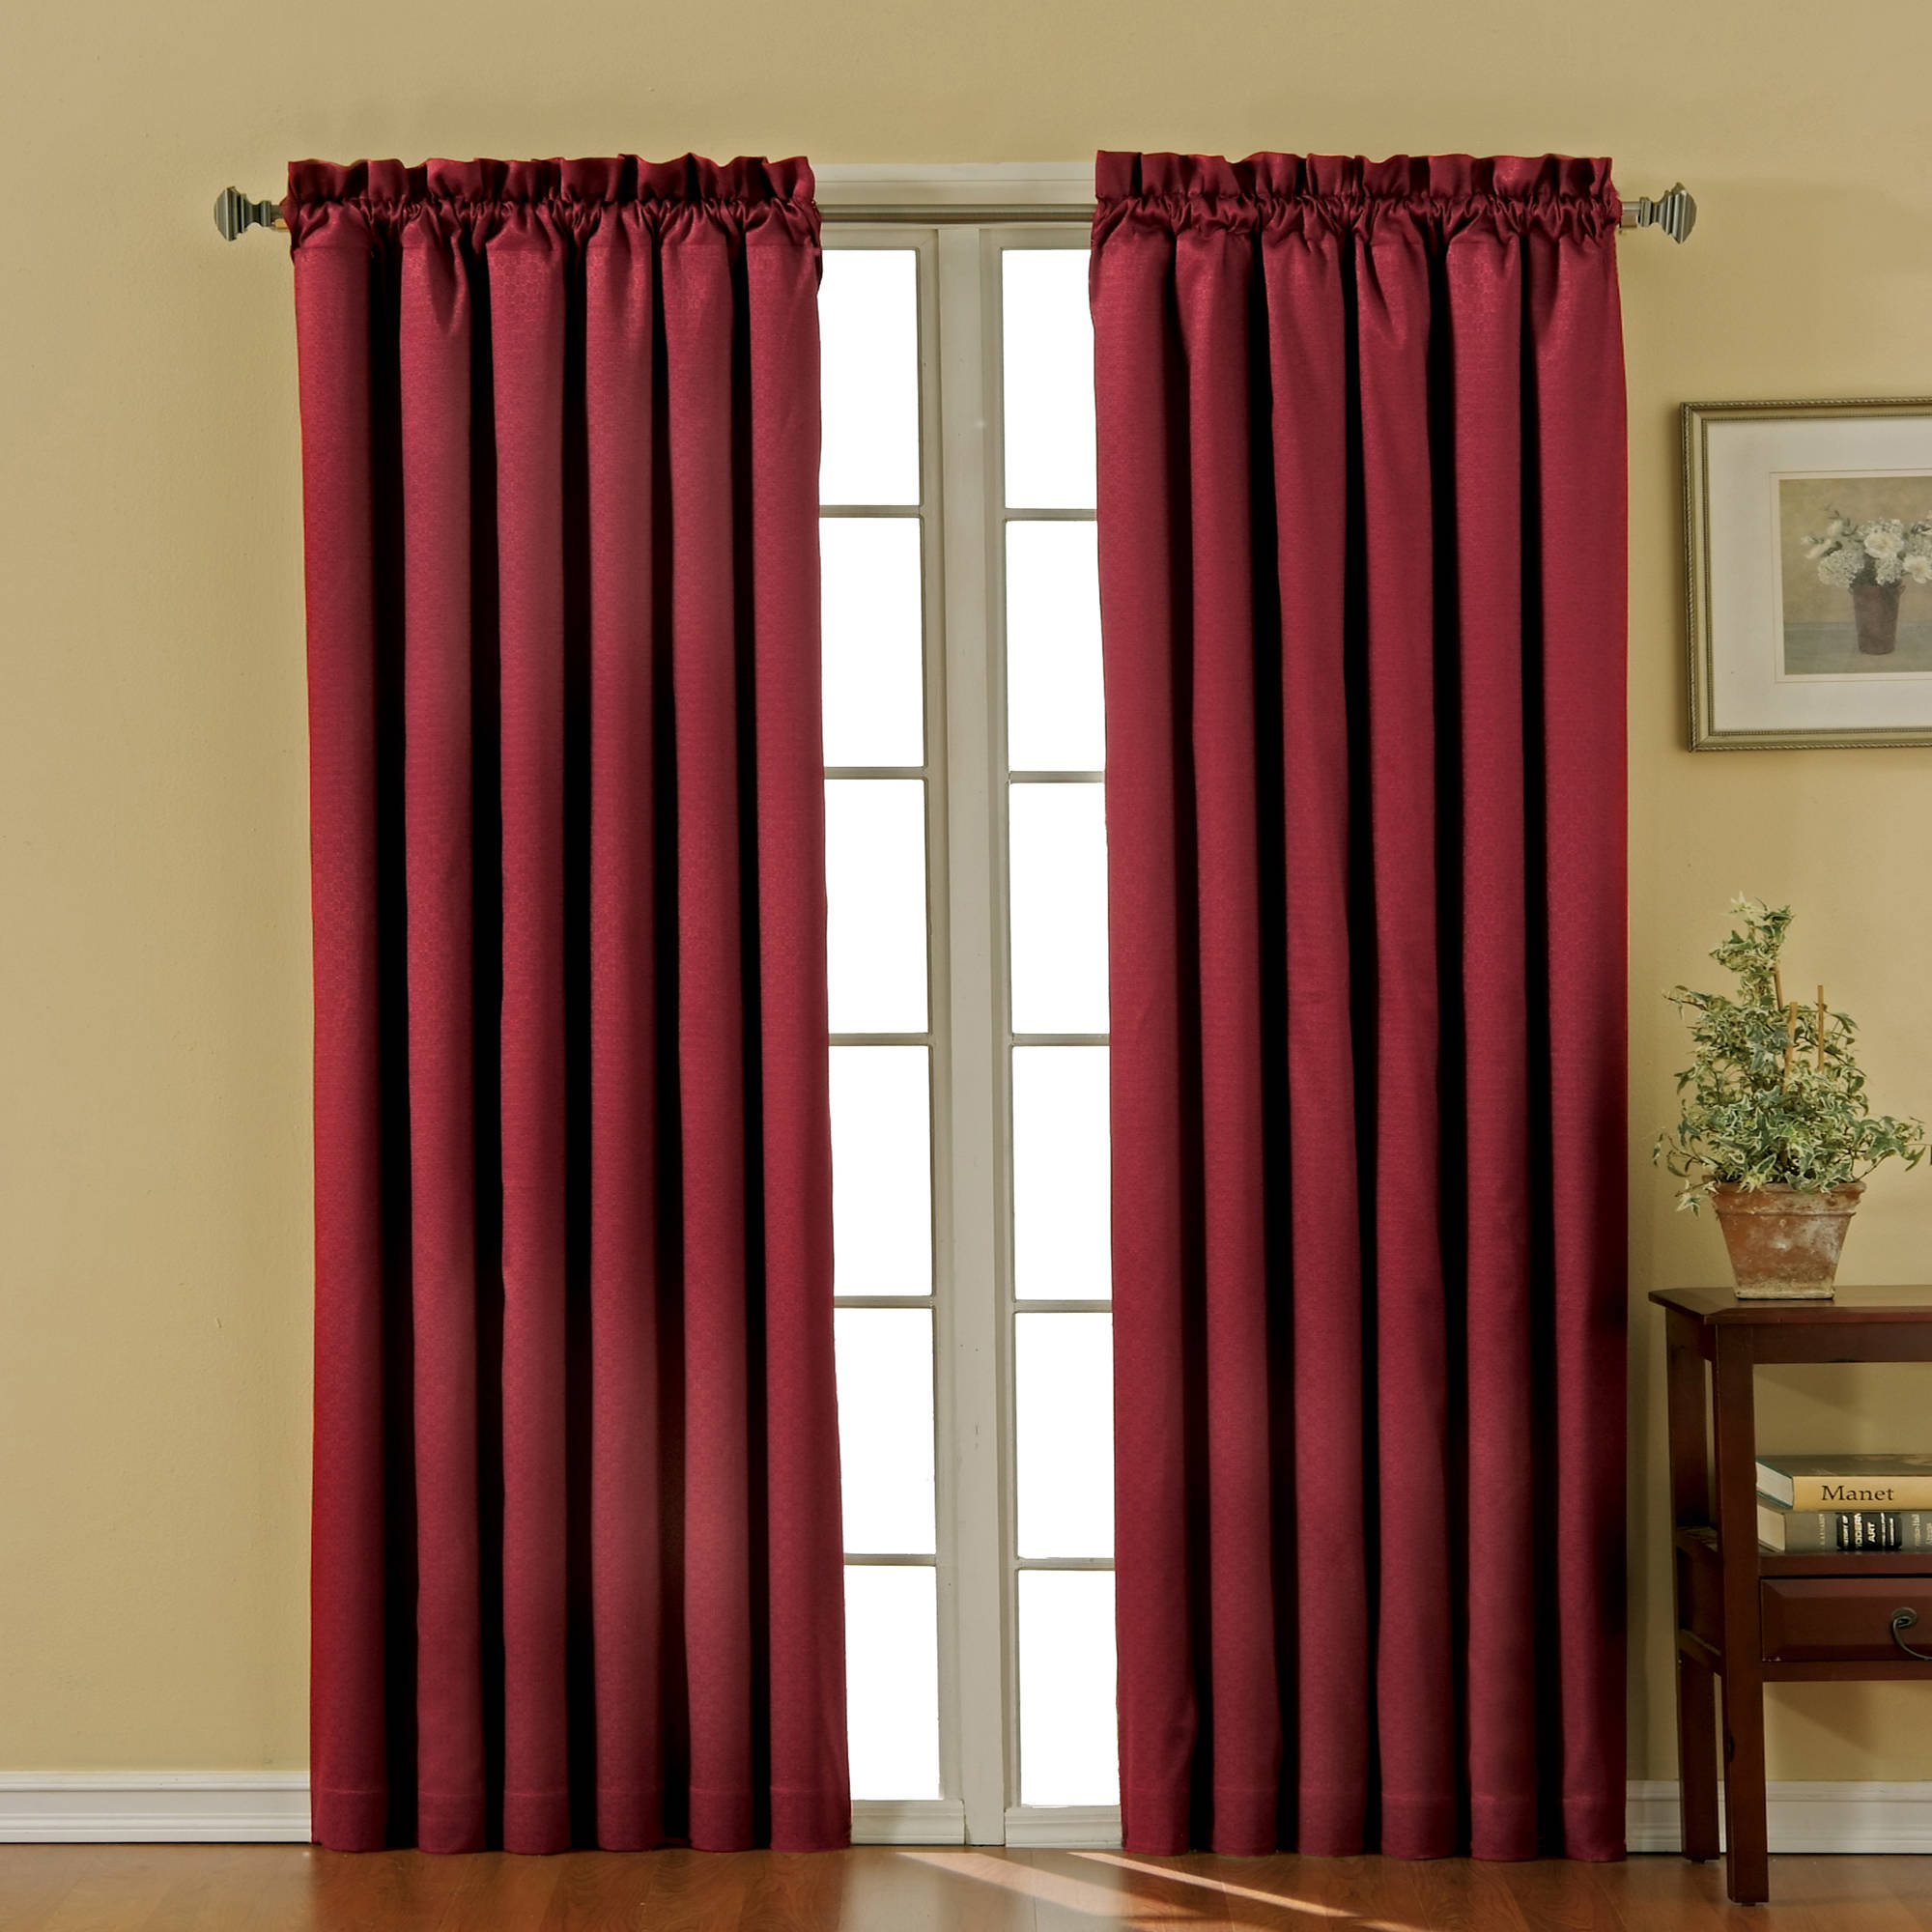 Eclipse Nottingham Thermal Energy-Efficient Rod Pocket Curtain Panel